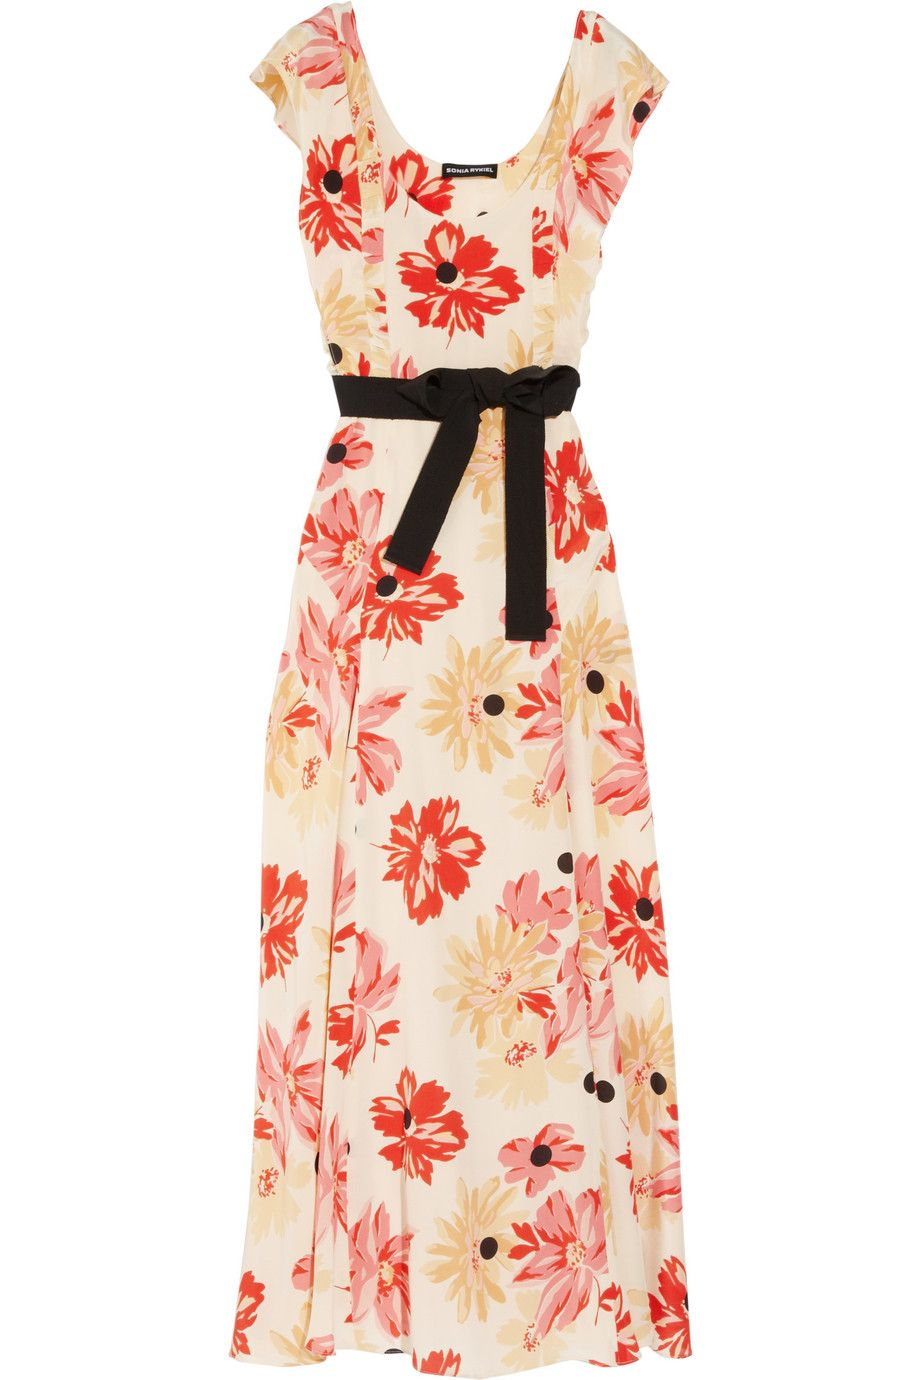 Sonia rykiel floralprint silk crepe de chine dress netaporter